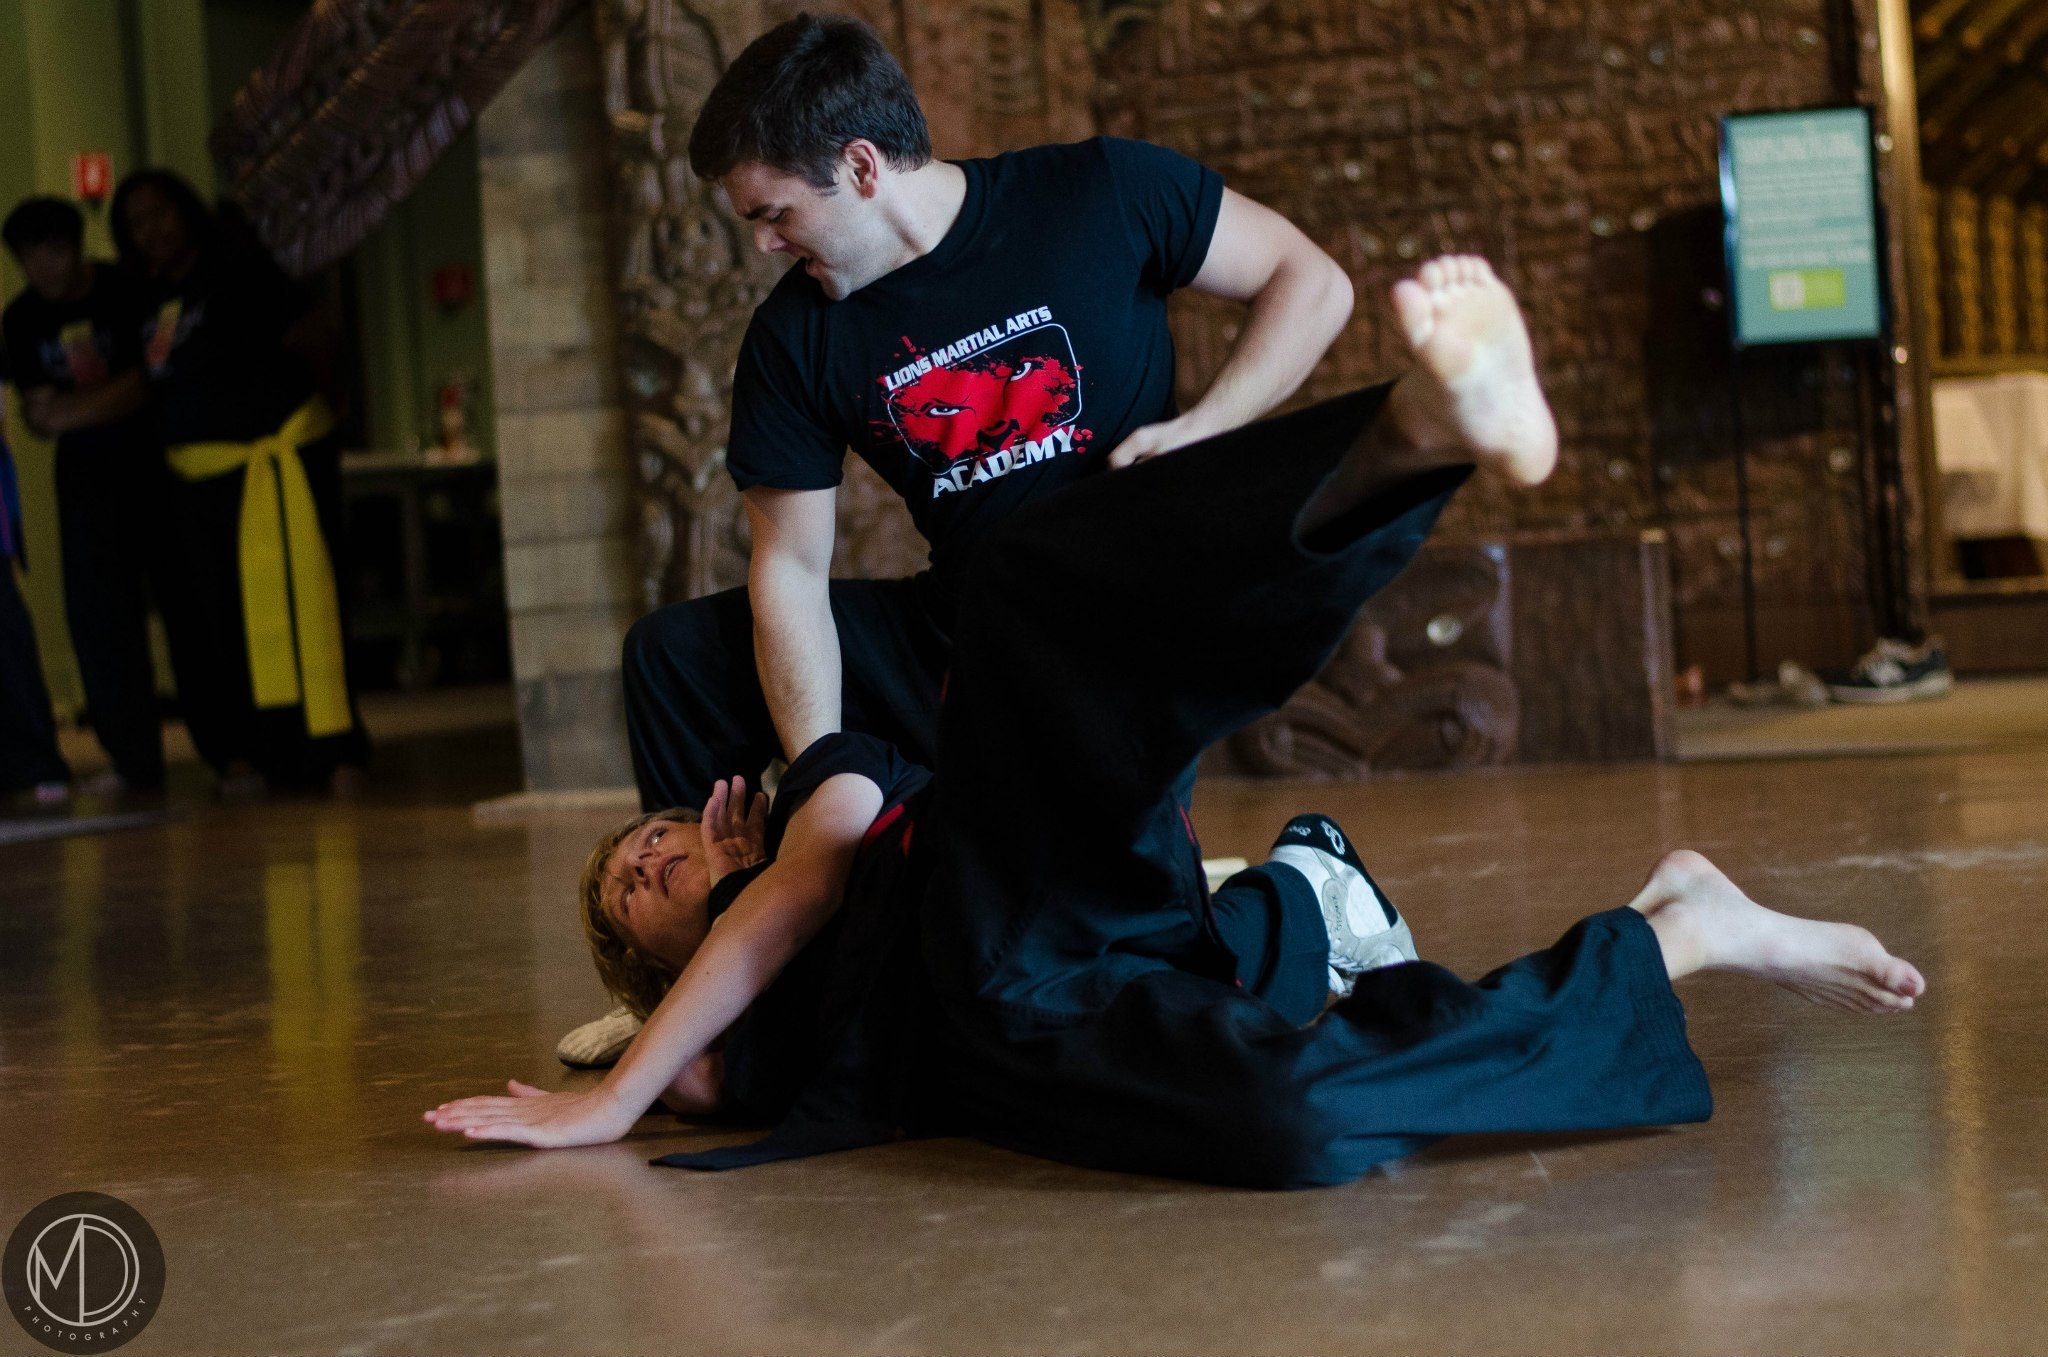 Members of Eskrima demonstrating techniques of this martial art.